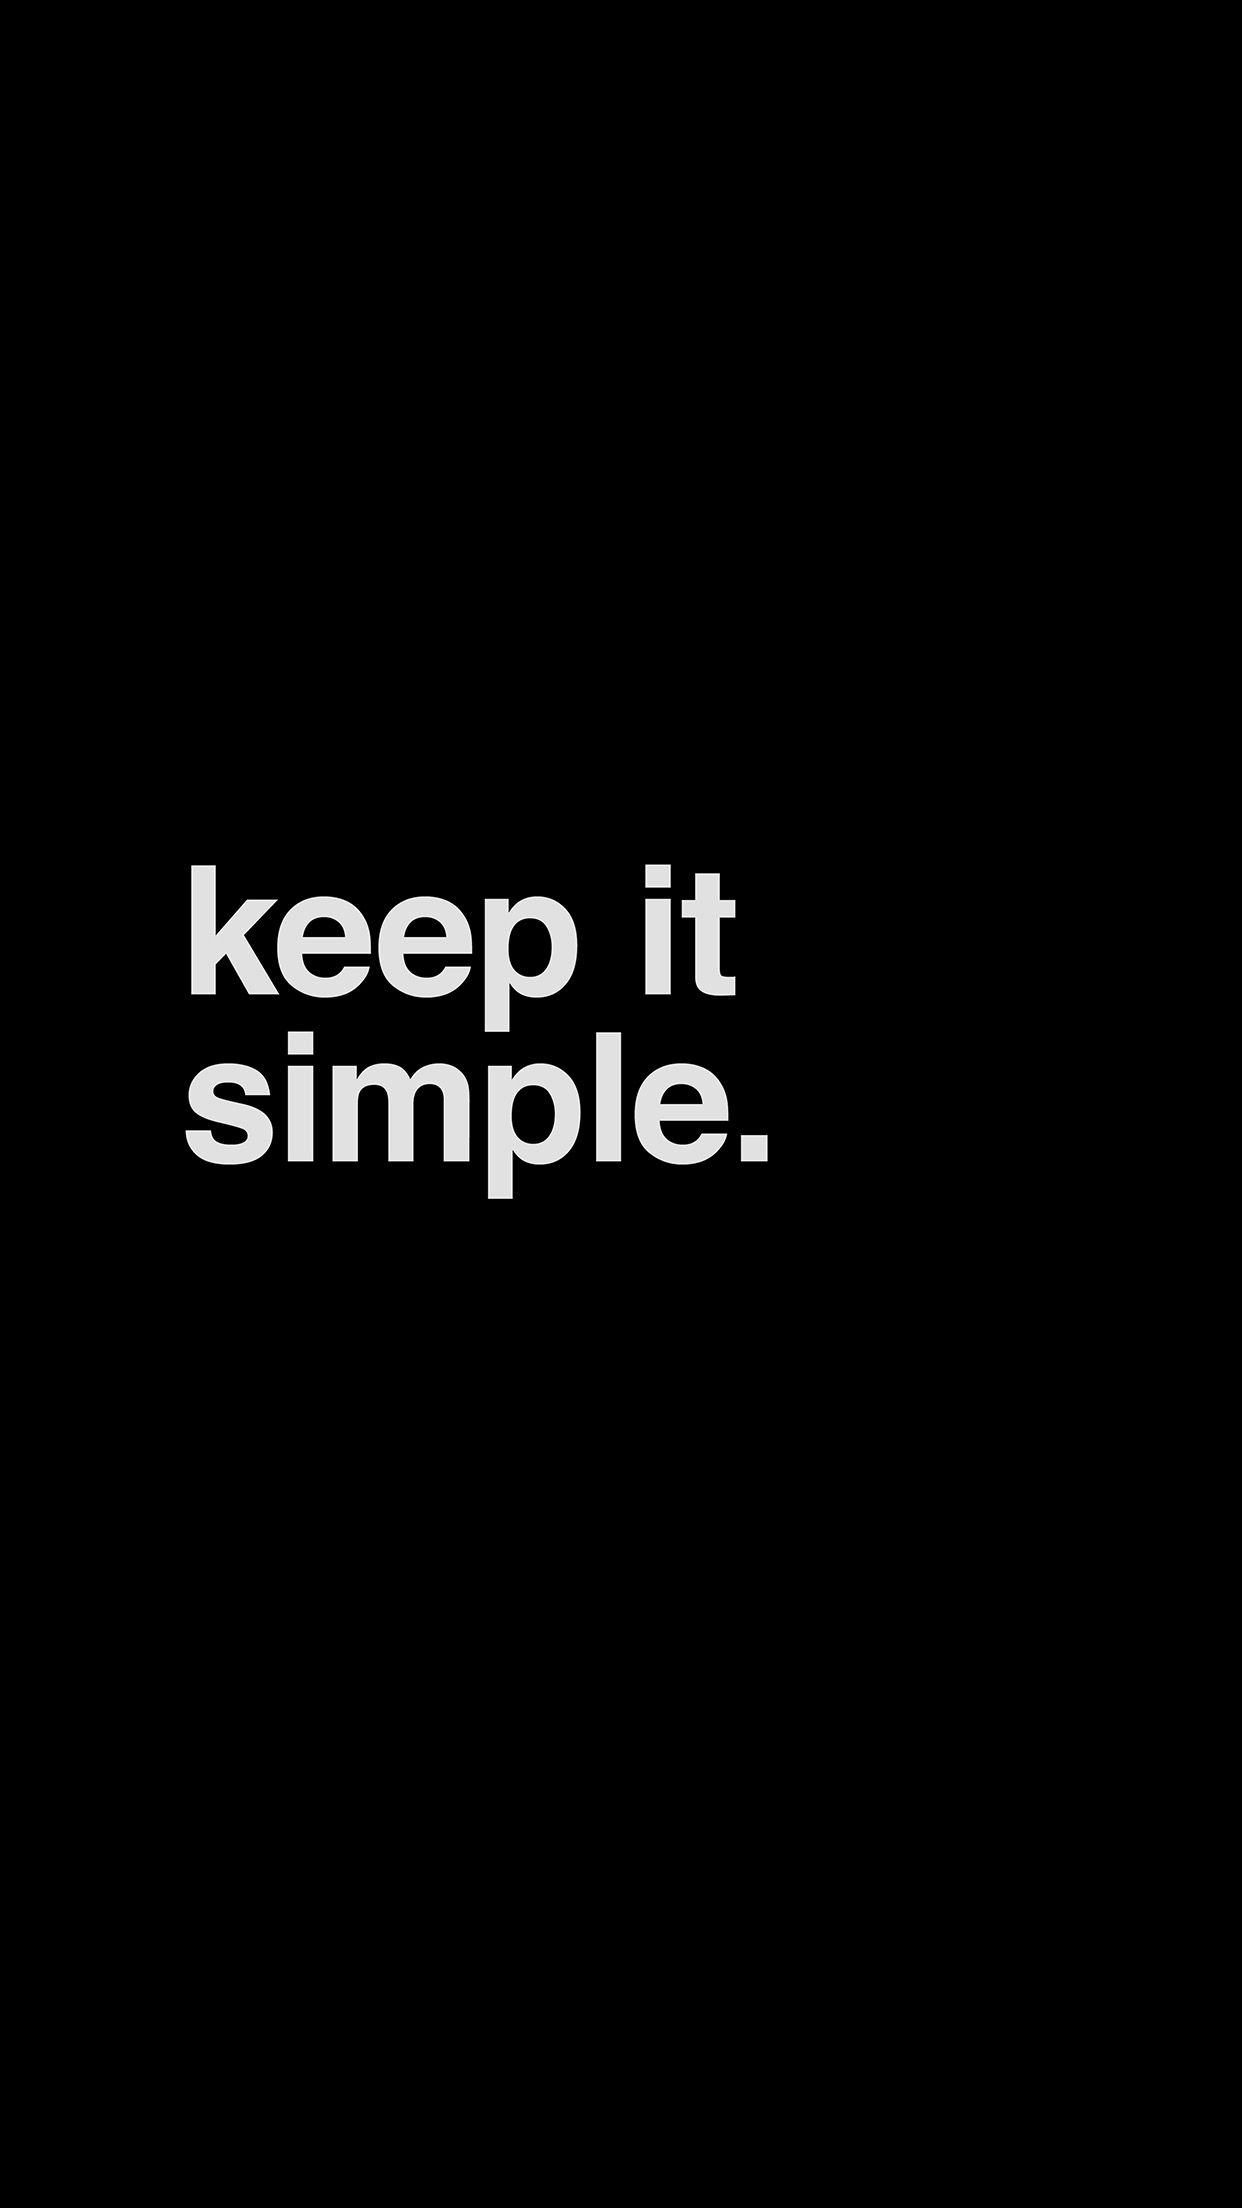 Minimal Keep It Simple Stupid Black Dark Quote Iphone6 Plus Wallpaper Mobile Wallpapers Dark Quotes Minimalist Quotes Black Quotes Wallpaper